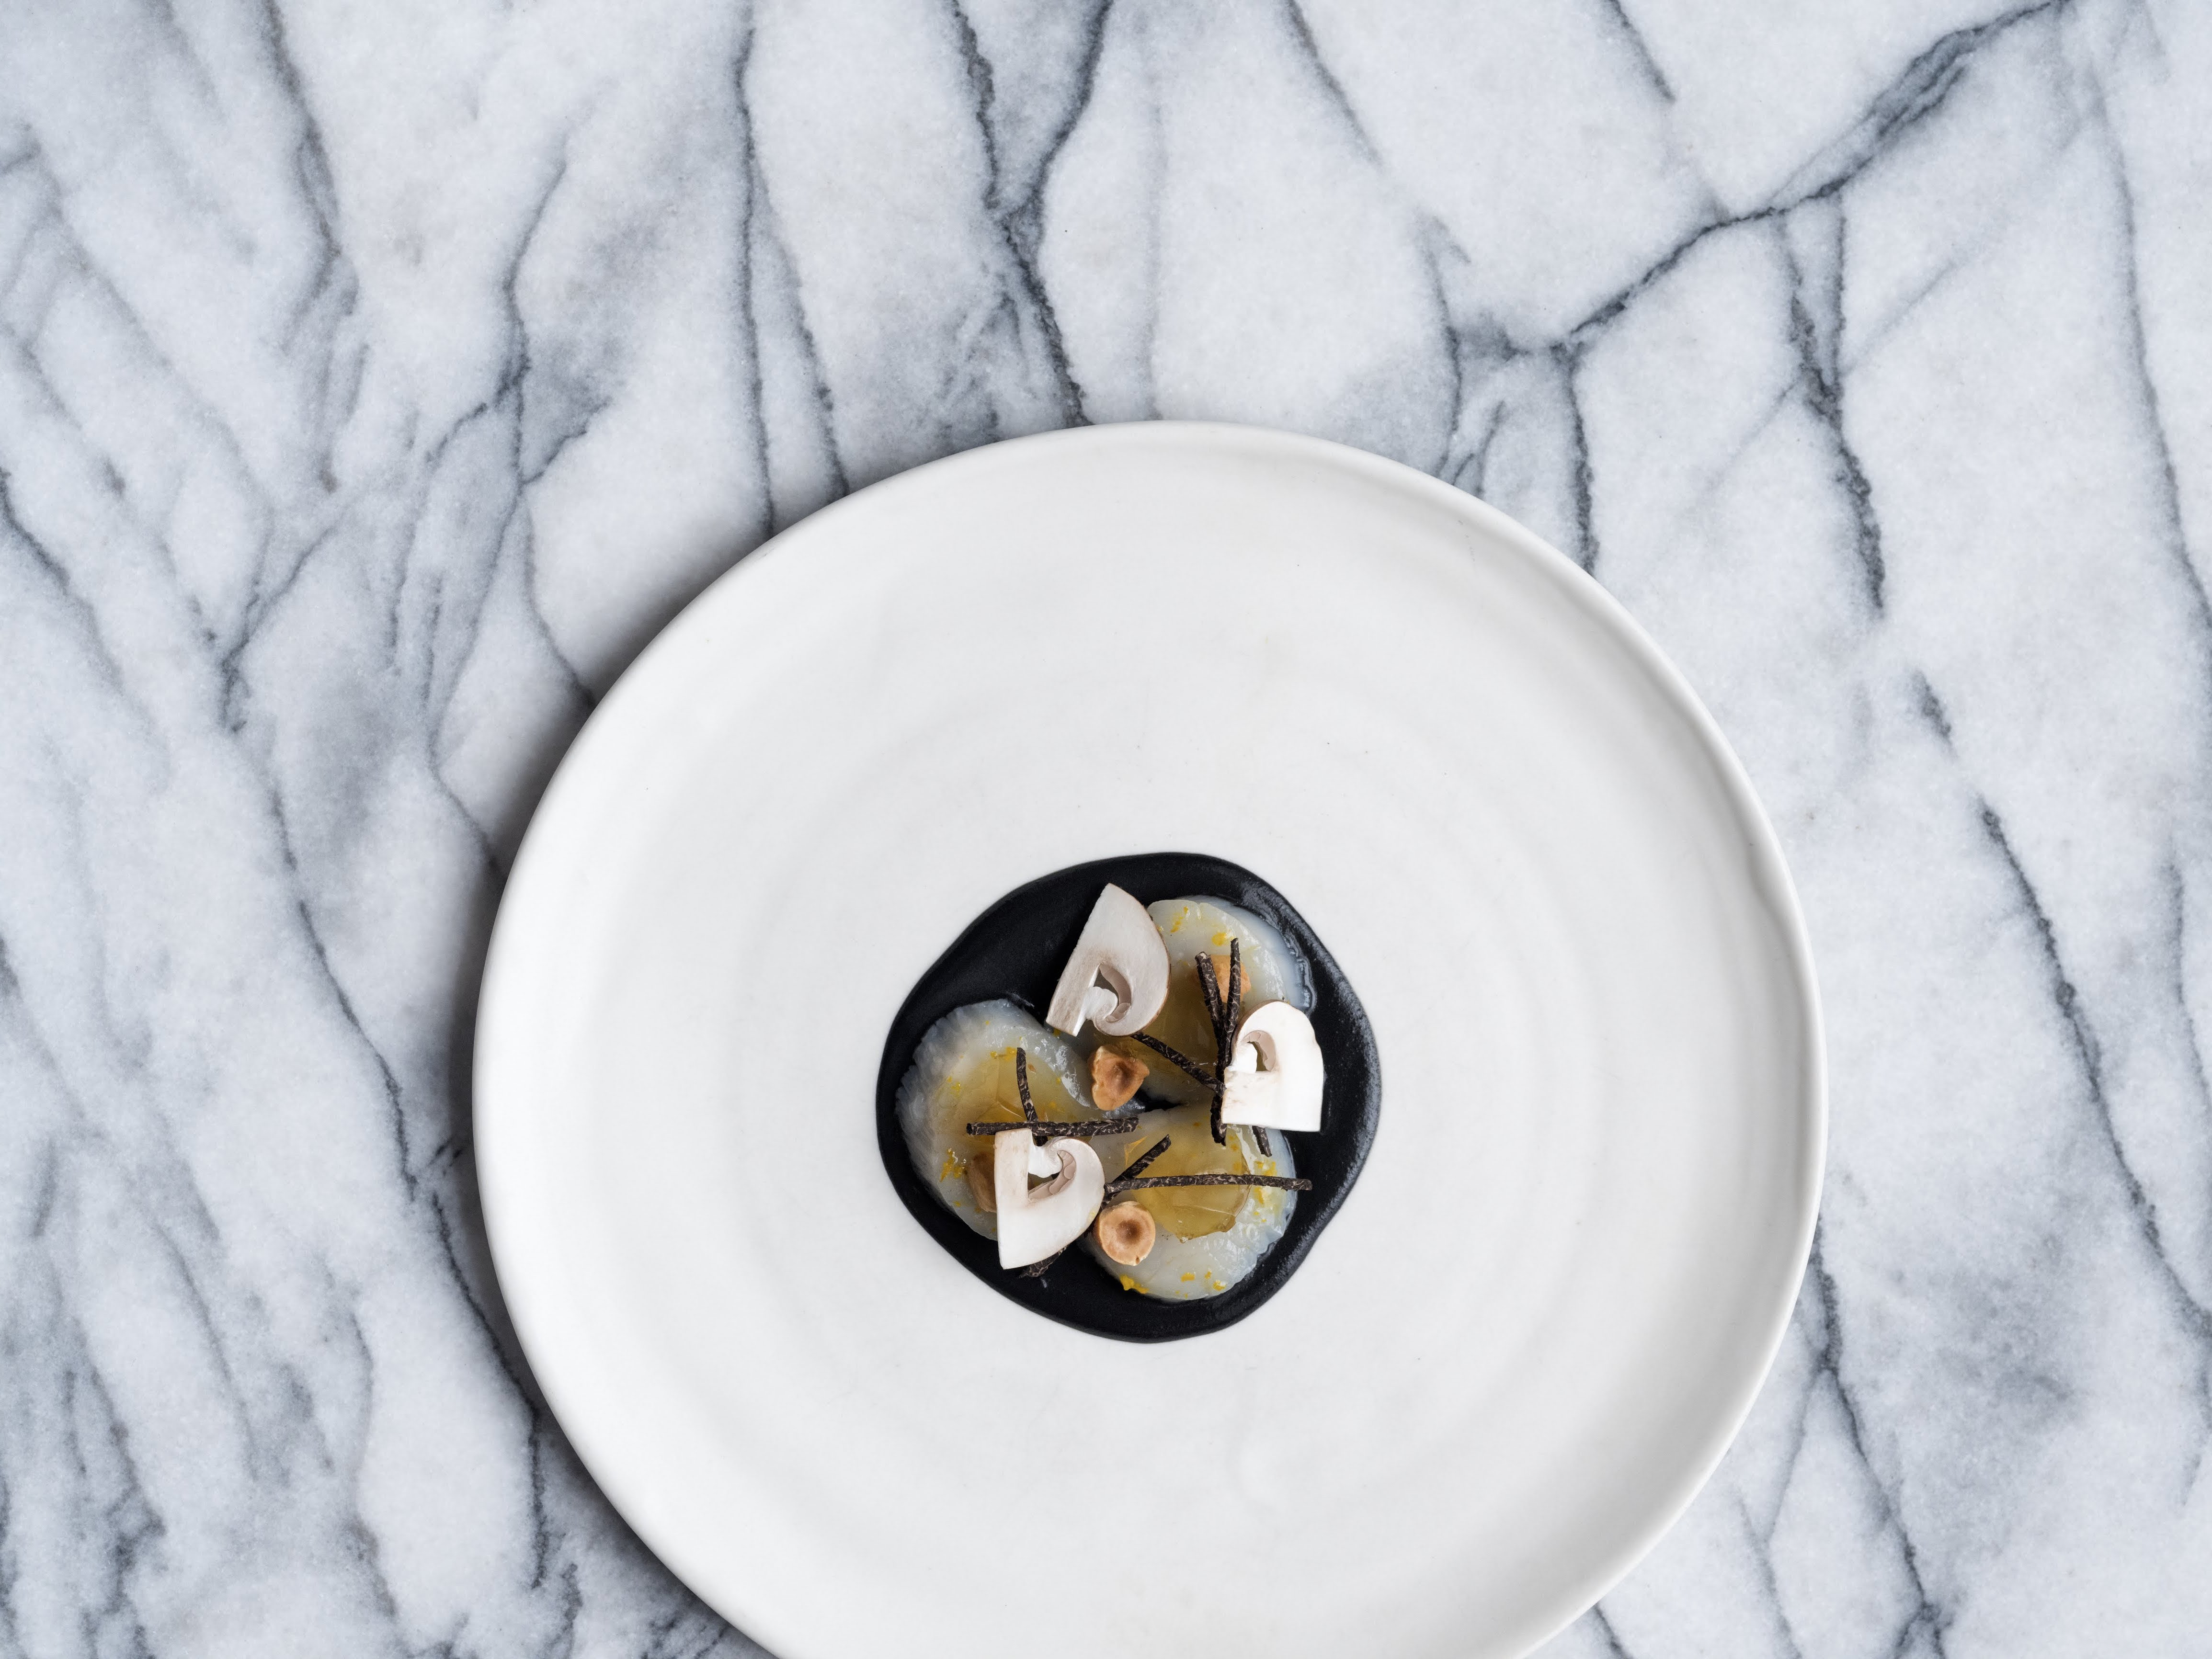 A dish from the tasting menu at the Michelin-starred Clove Club in Shoreditch